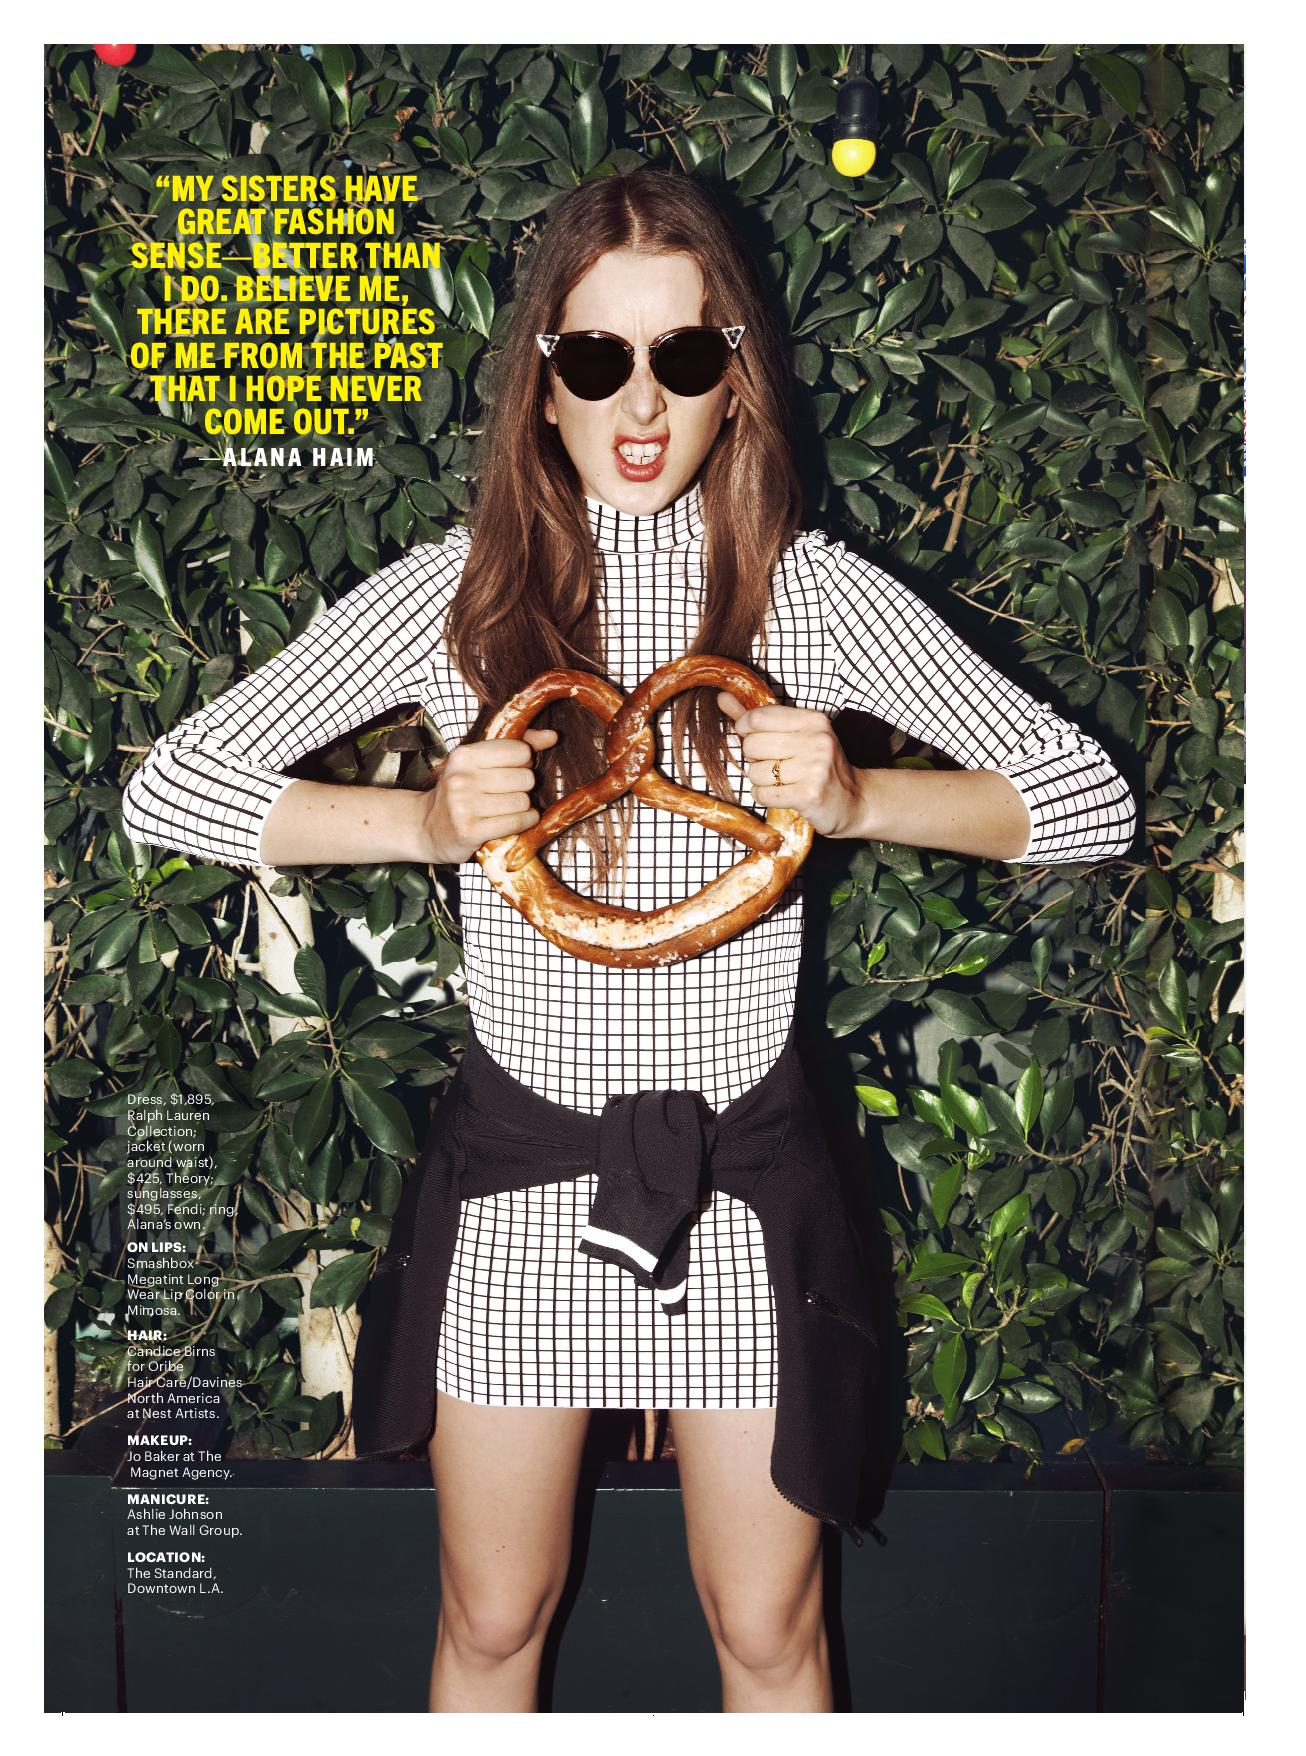 HAIM Marie Claire-page-003 copy.jpg